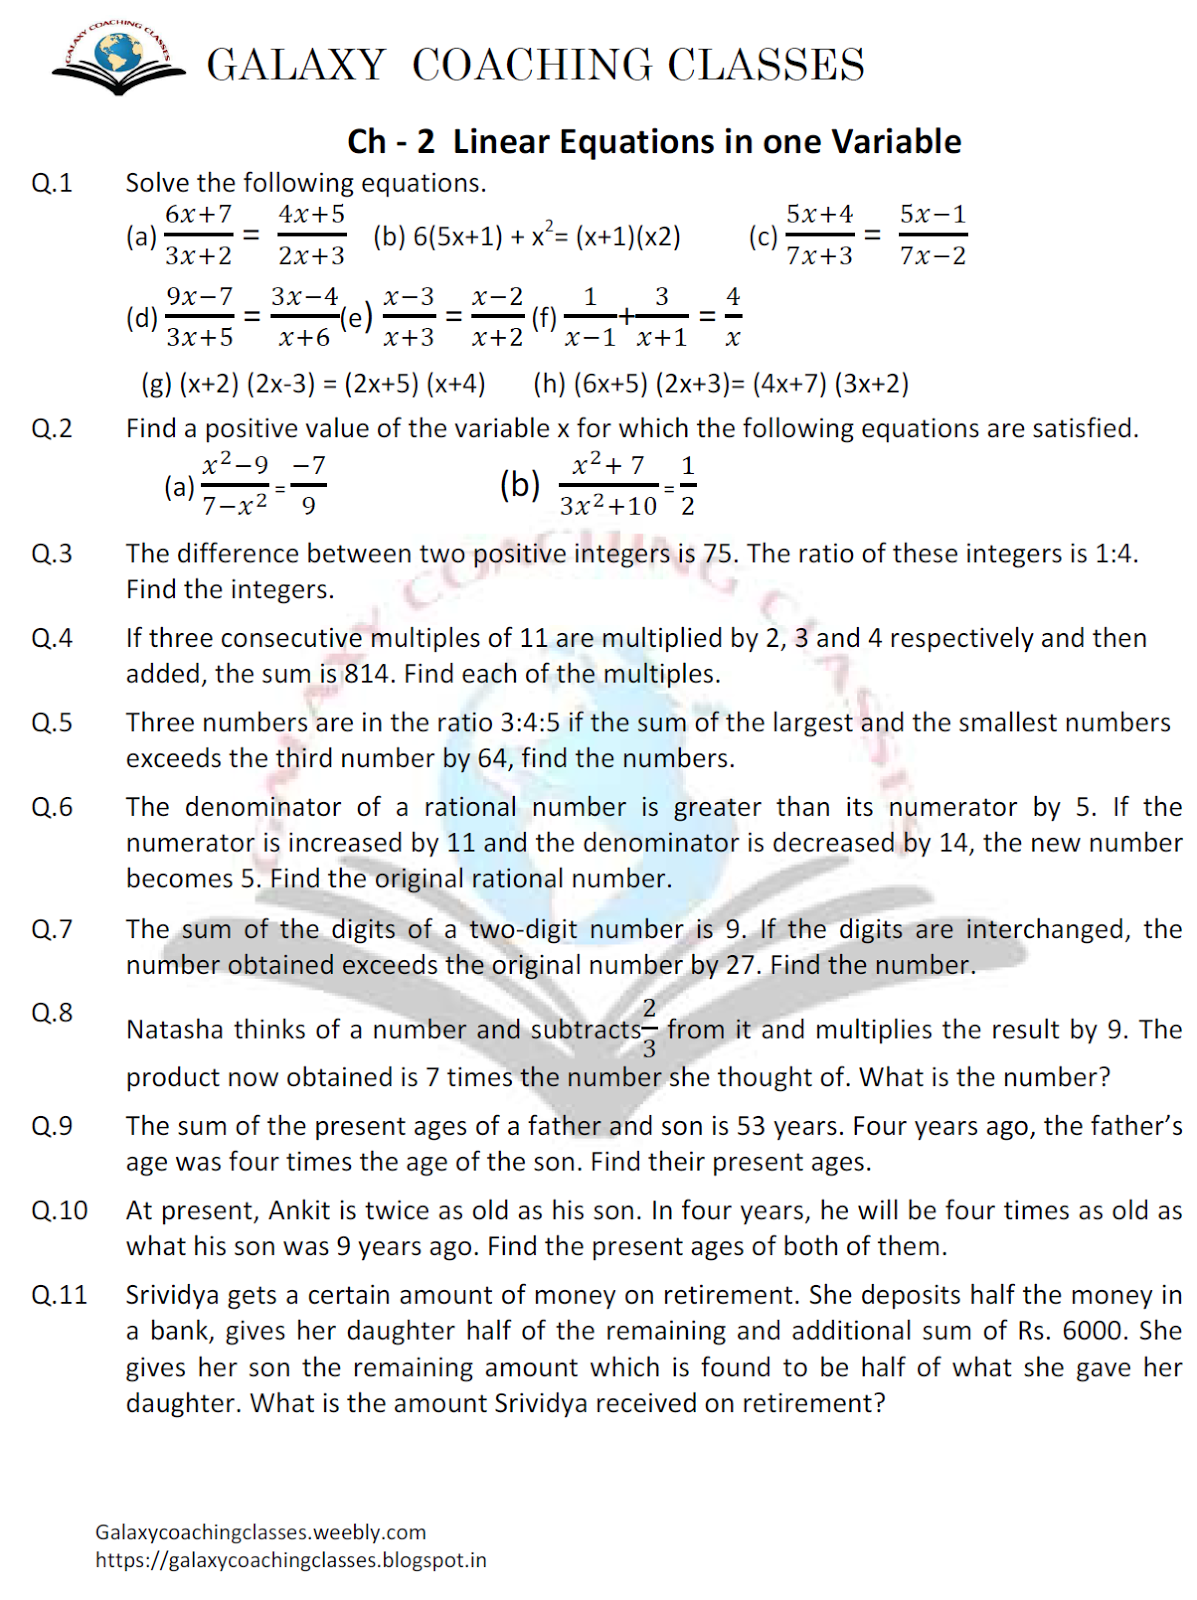 Galaxy Coaching Classes Worksheet Class 8 Ch 2 Linear Equations In Two Variables